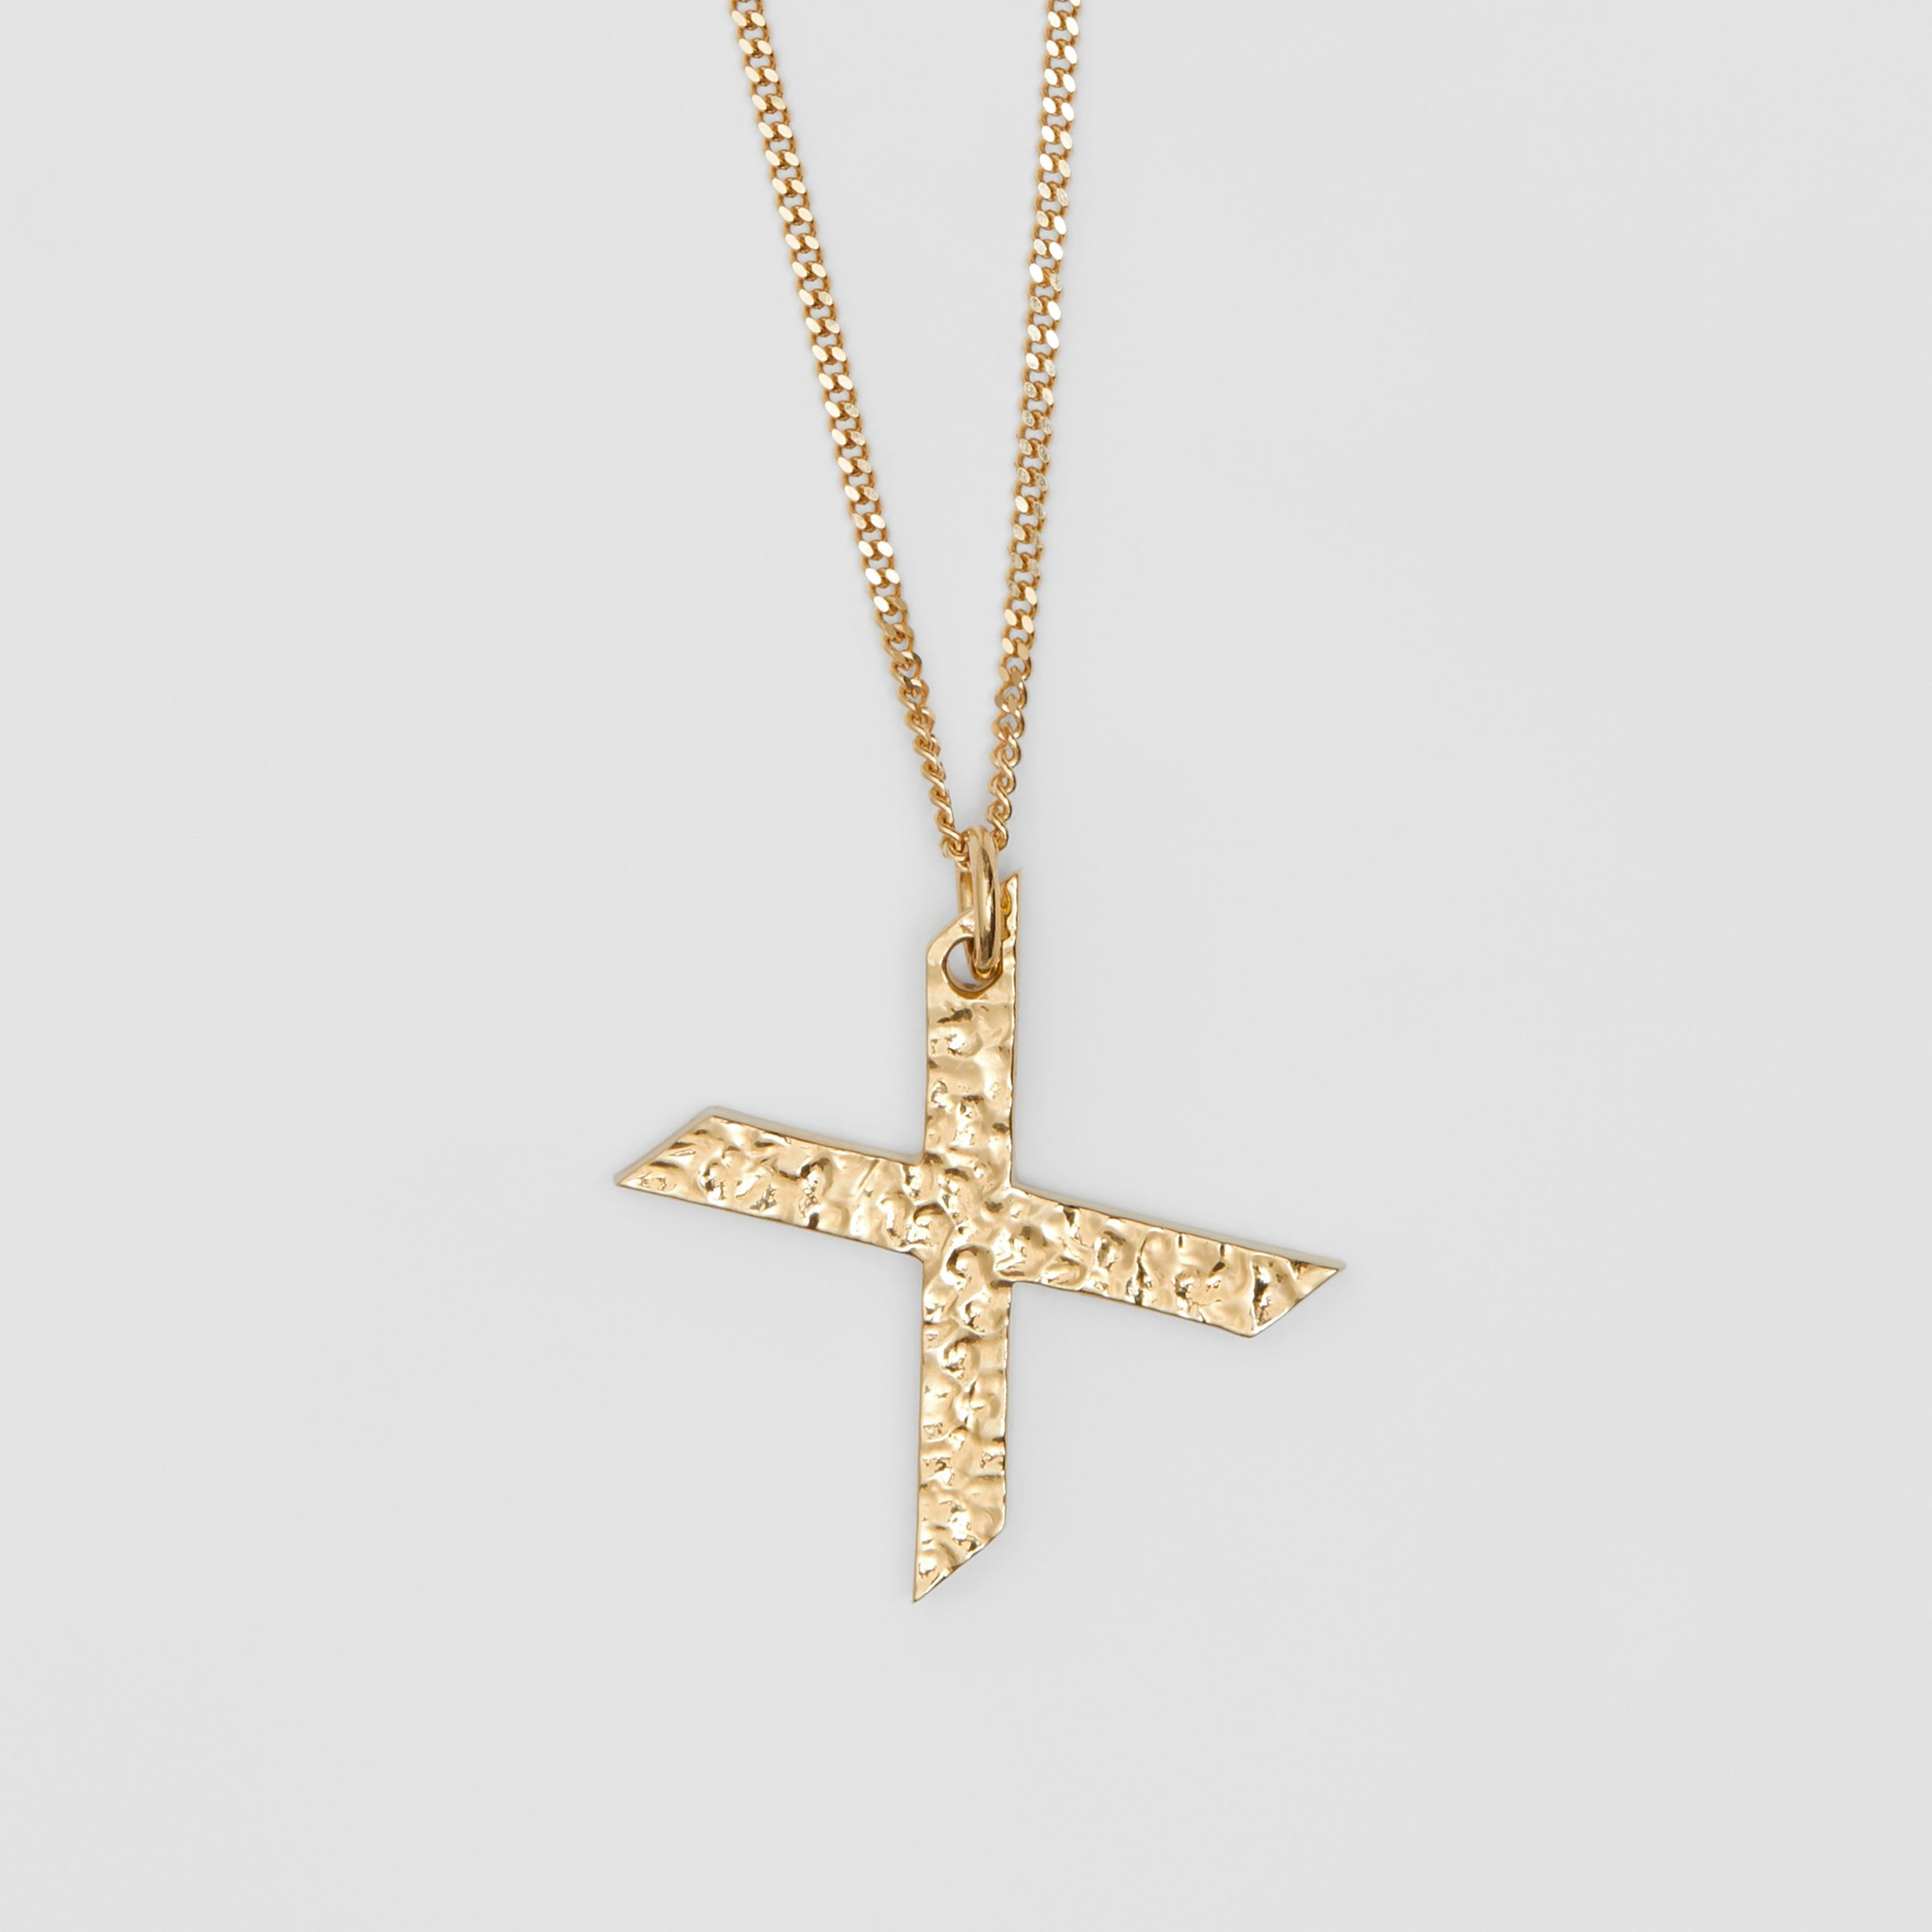 'X' Alphabet Charm Gold-plated Necklace in Light - Women | Burberry - 3